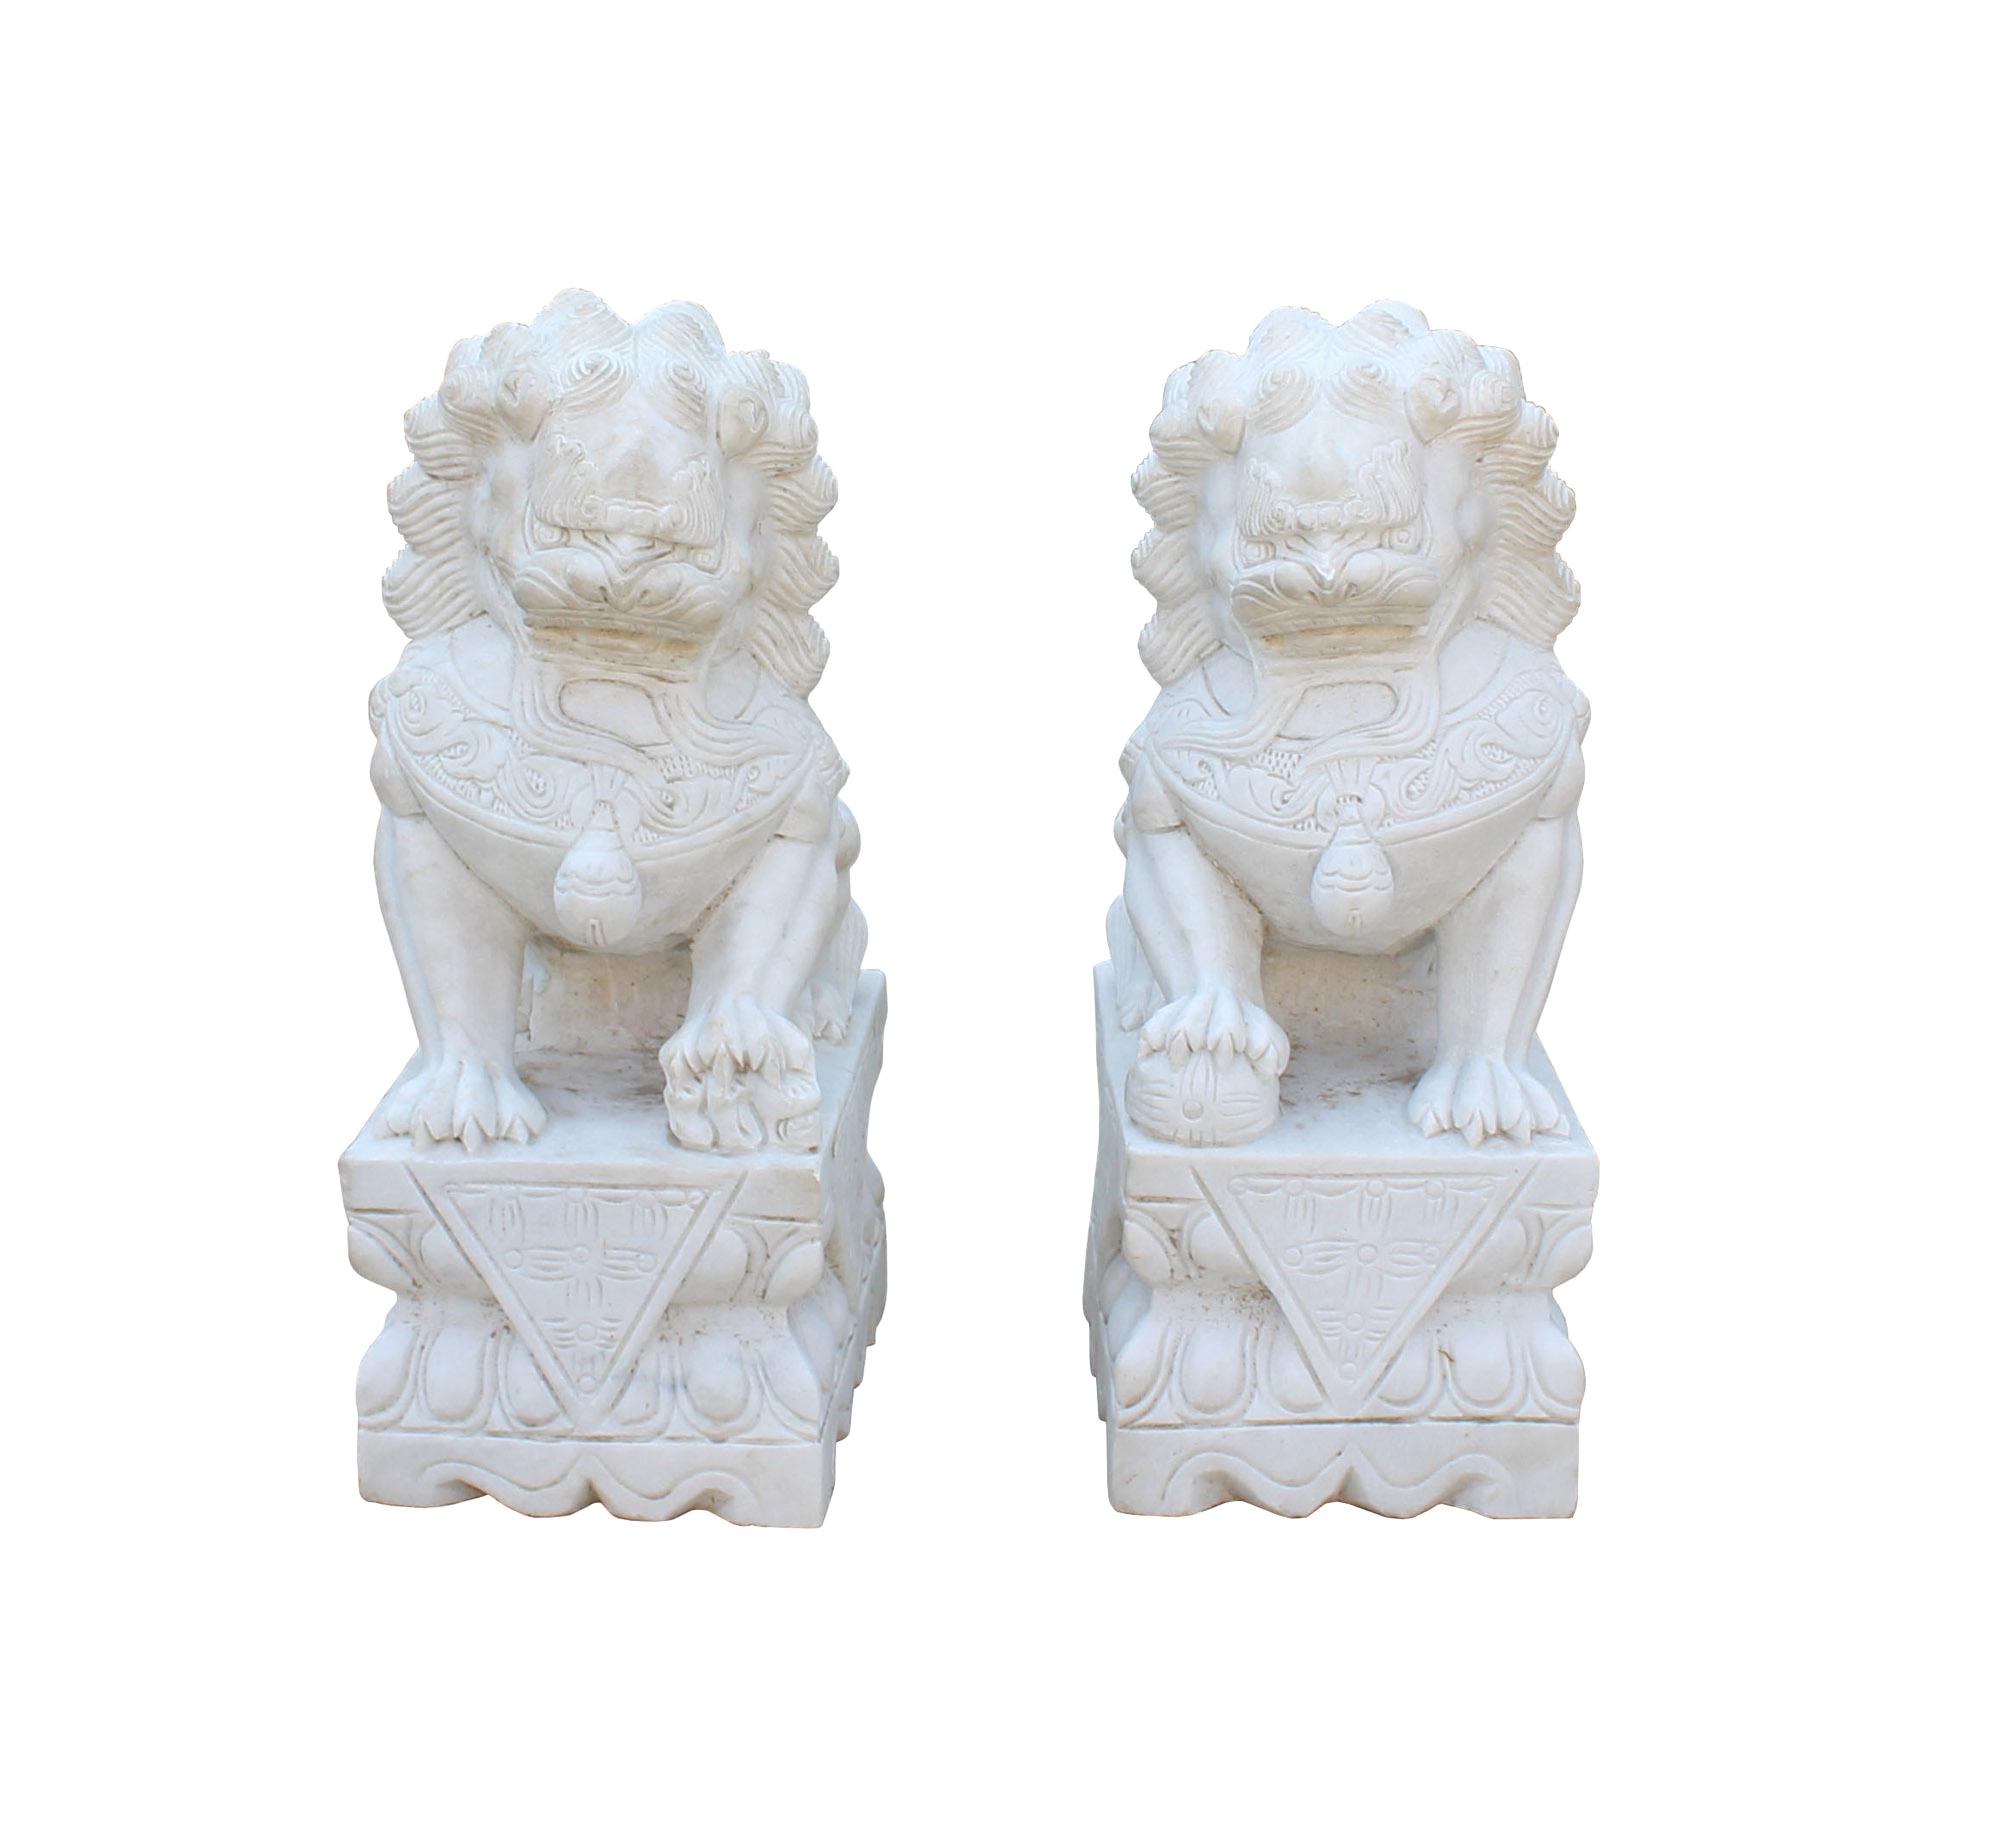 Off White Marble : Chinese pair distressed off white marble stone fengshui